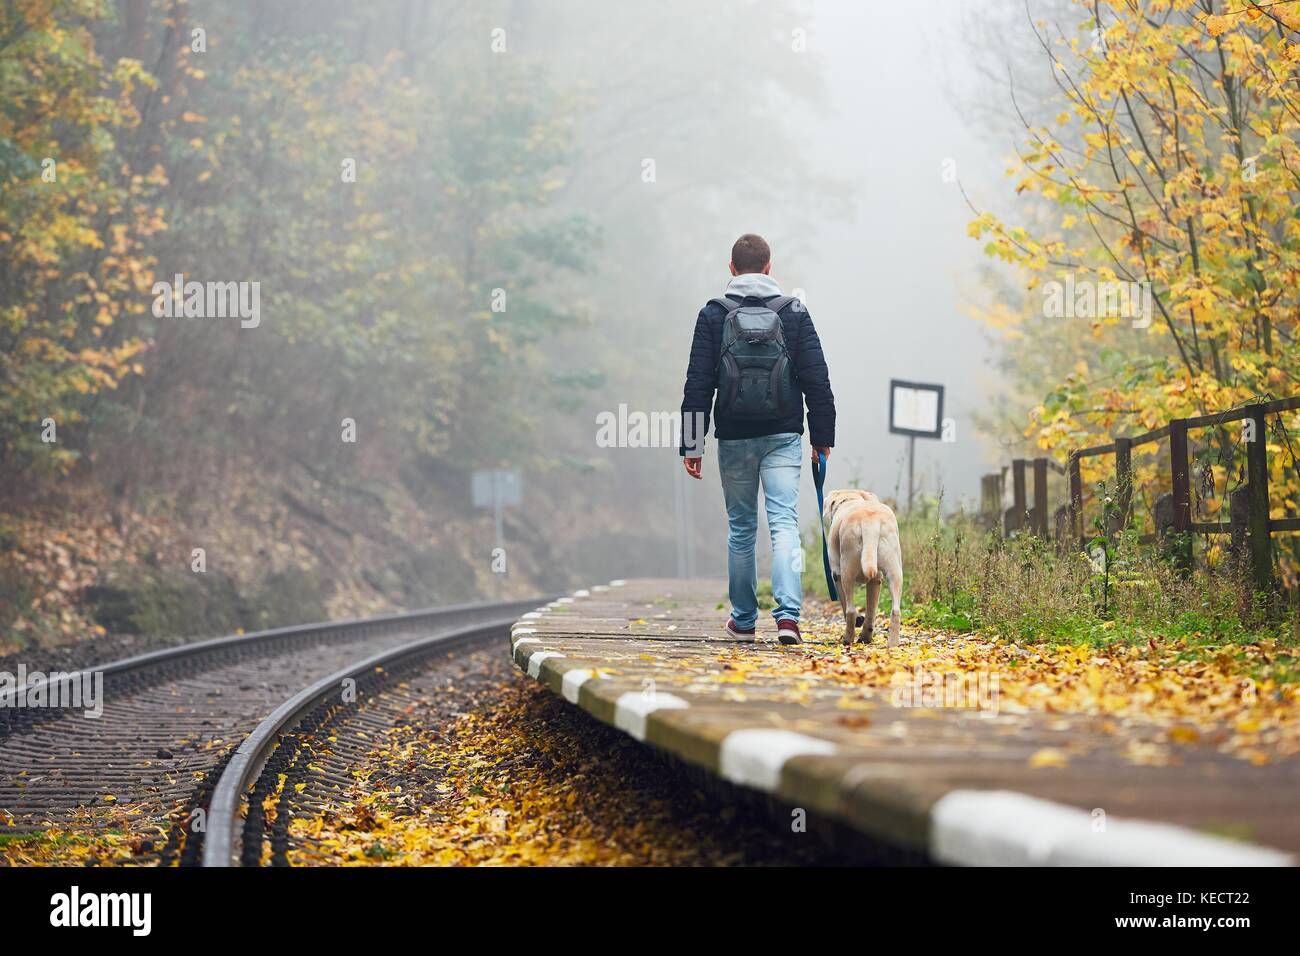 Old railway station in fog. Autumn mood on the trip. Young man traveling with his dog by train. - Stock Image